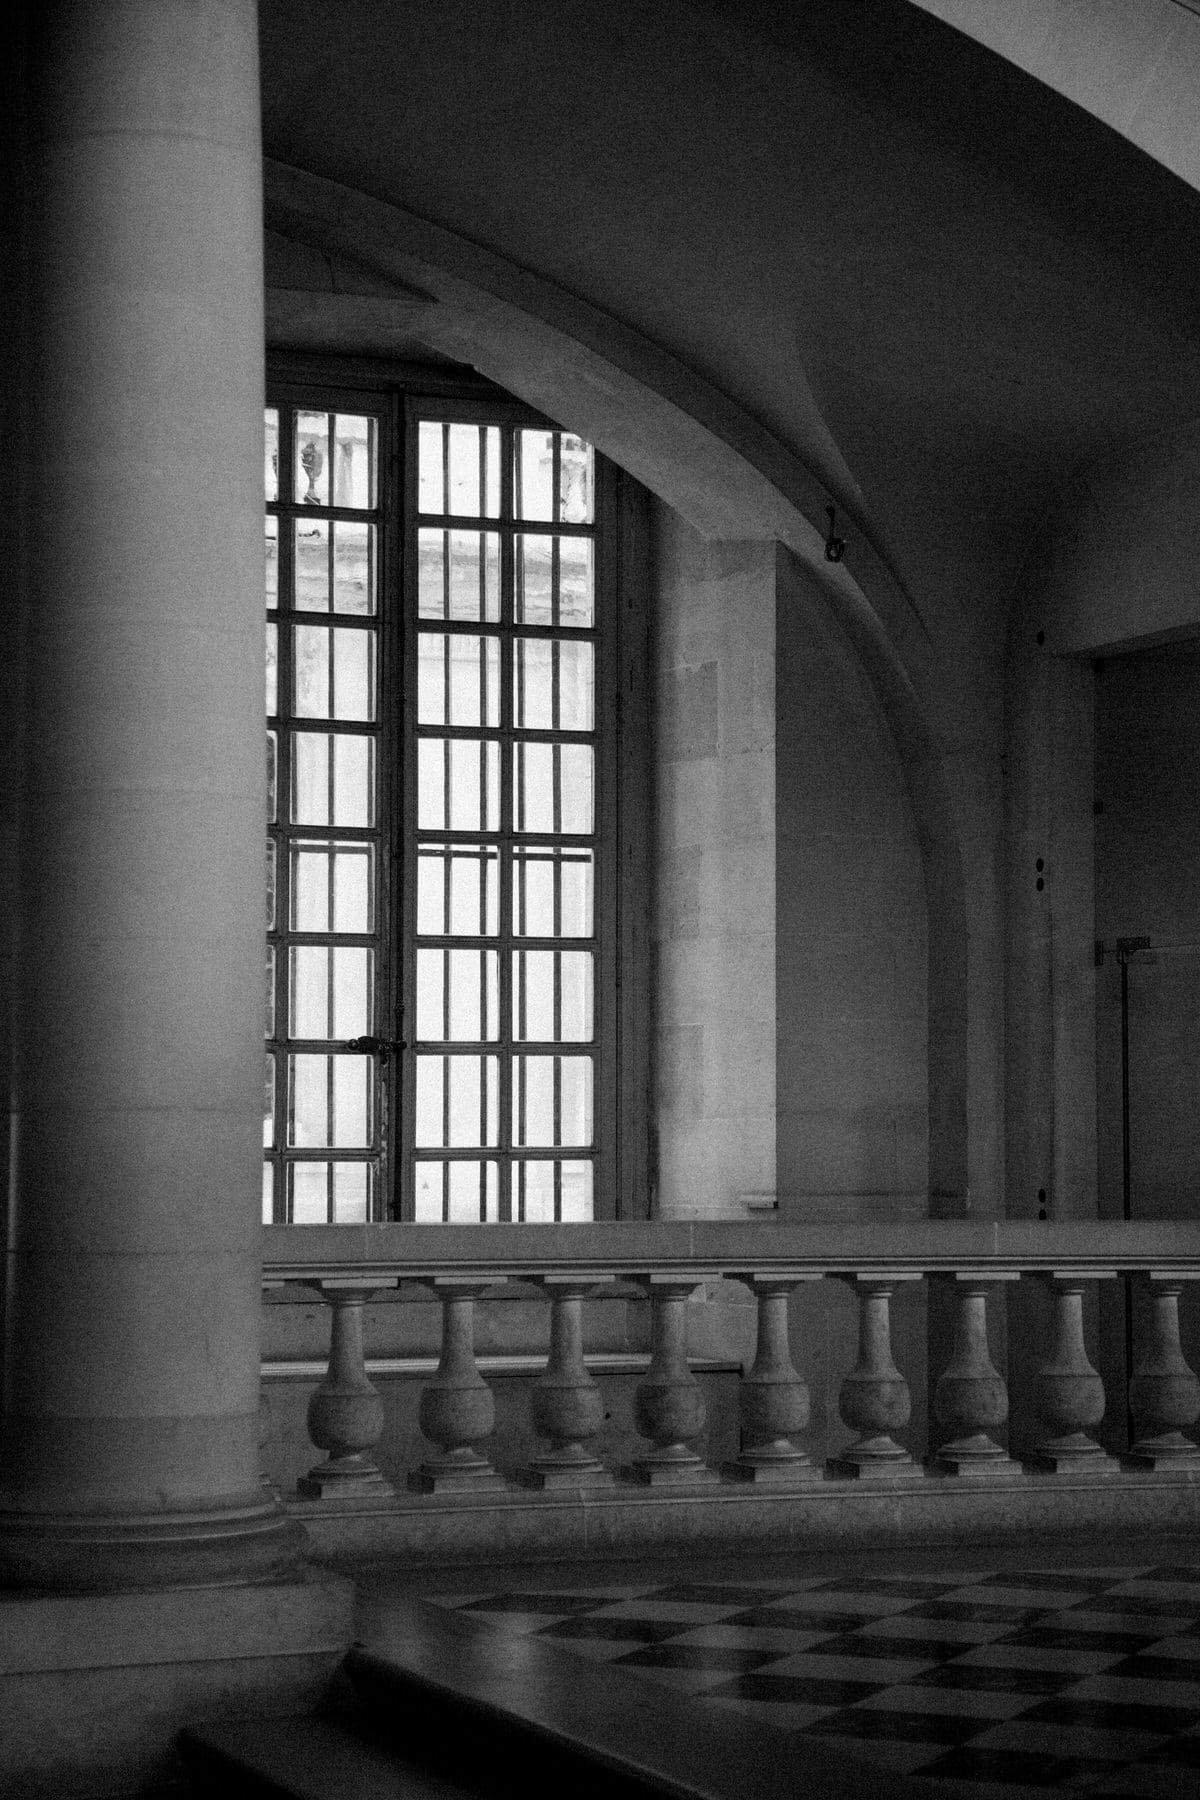 Palace-of-Versailles-France-black-and-white-fine-art-photography-by-Studio-L-photographer-Laura-Schneider-_4776